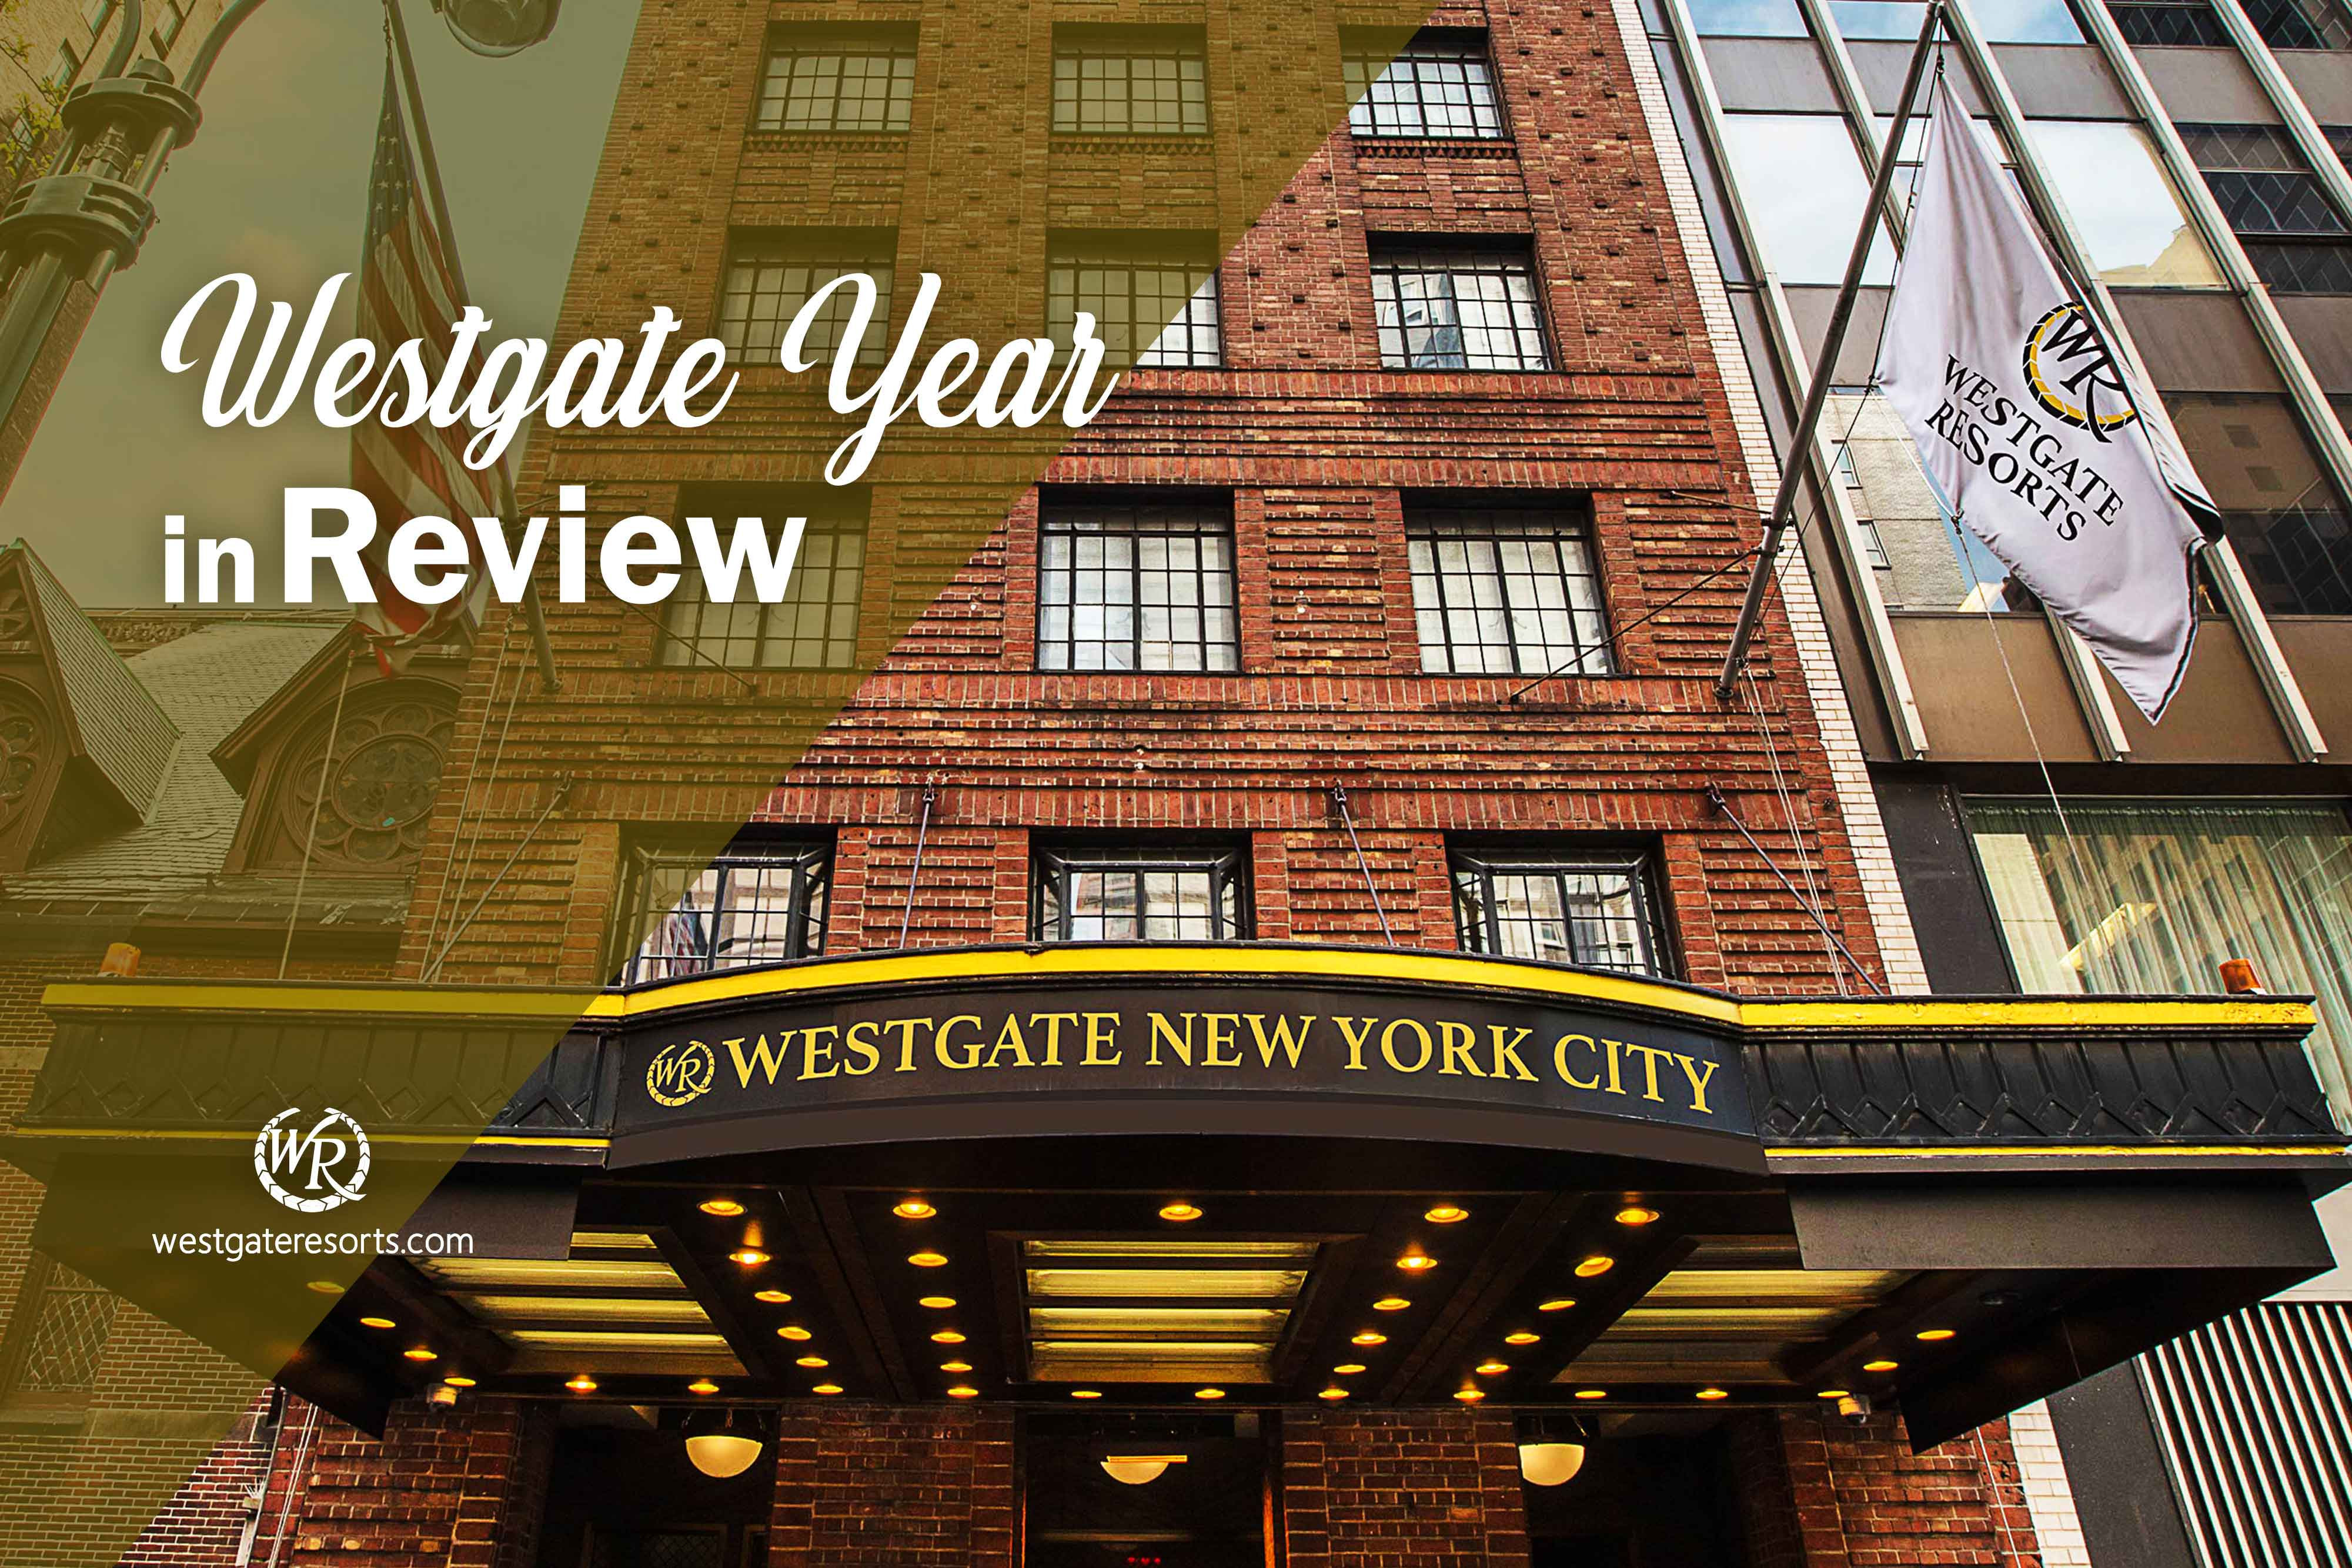 Westgate's Year In Review | Westgate Resorts